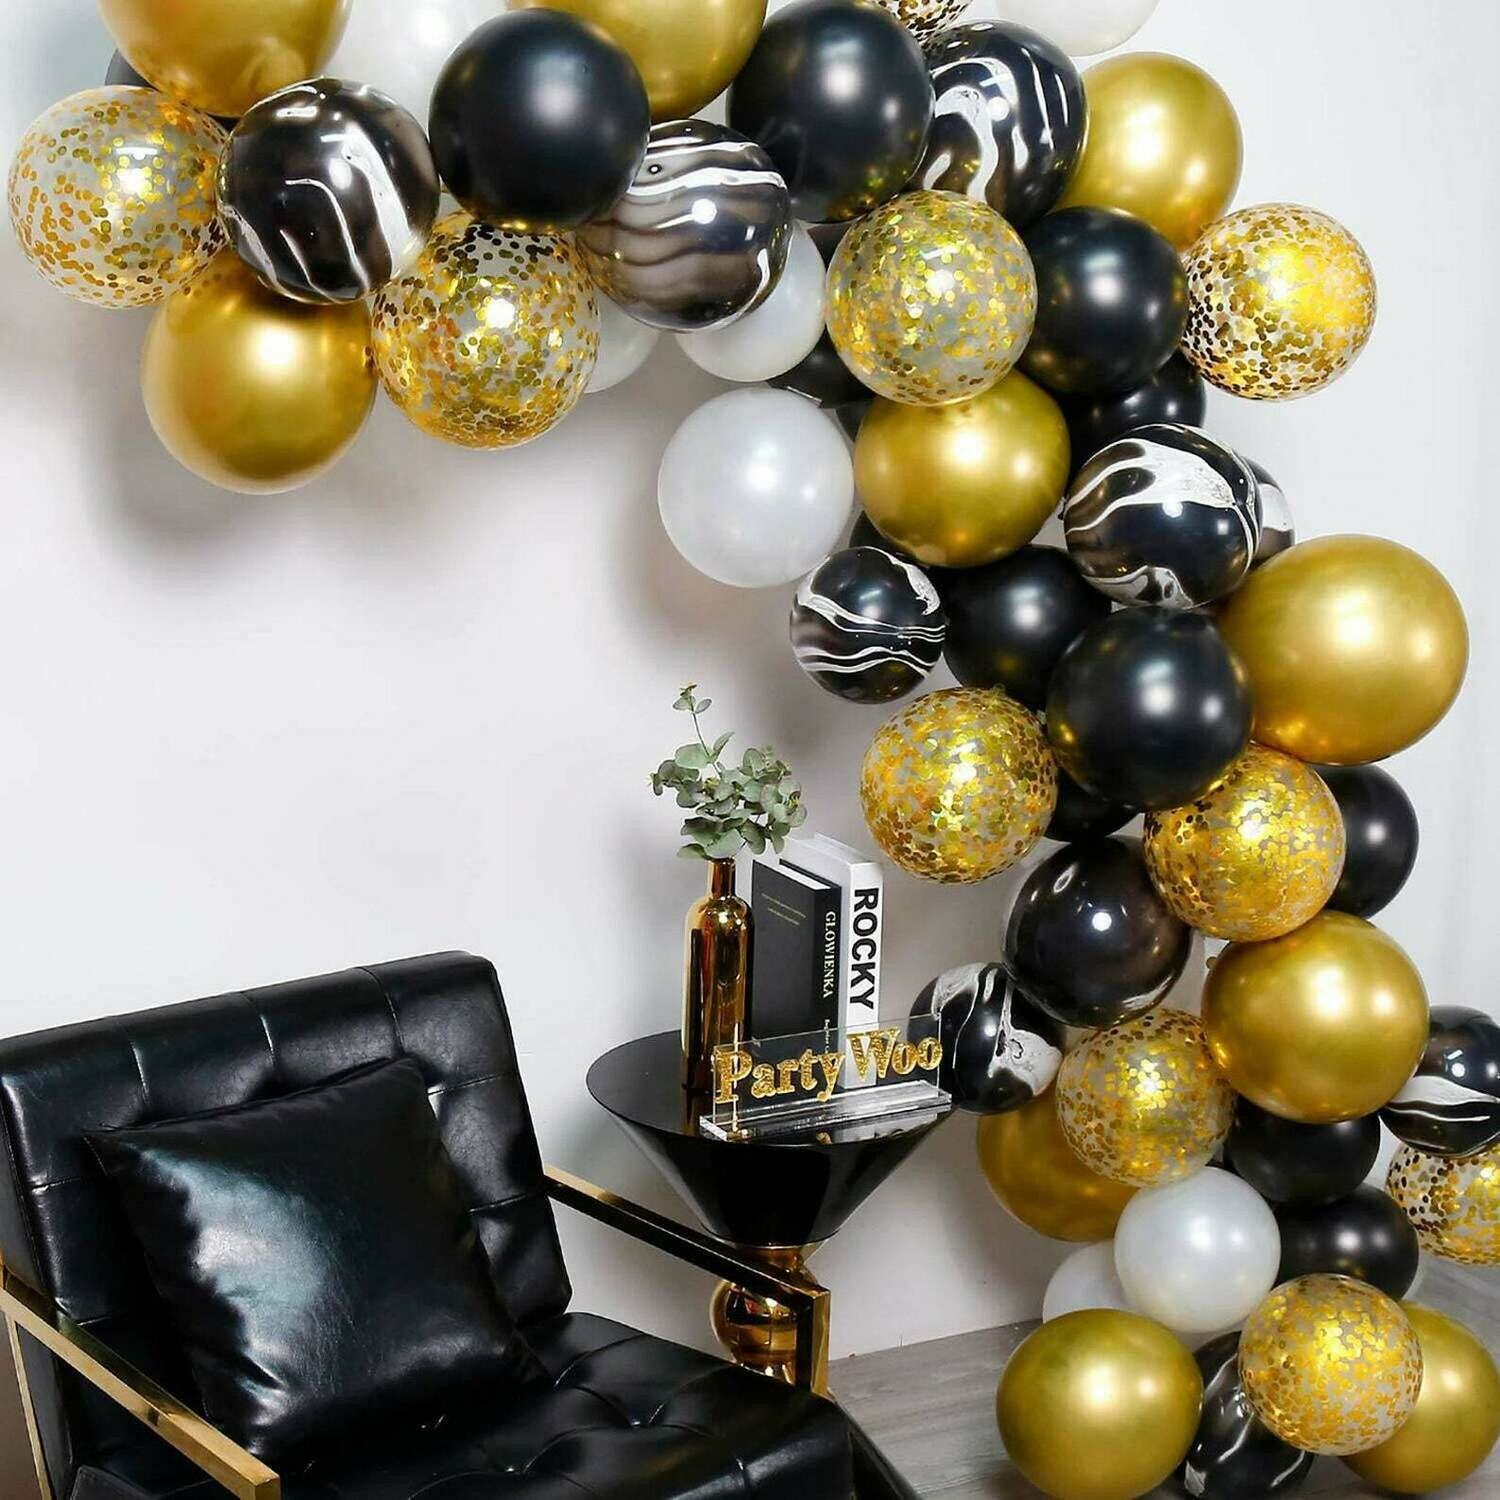 Black Agate Gold Balloon Garland Kit, Balloon Arch Kit, Party Decor, Wedding Decoration, Baby Shower, Bachelorette Party, Party Supplies